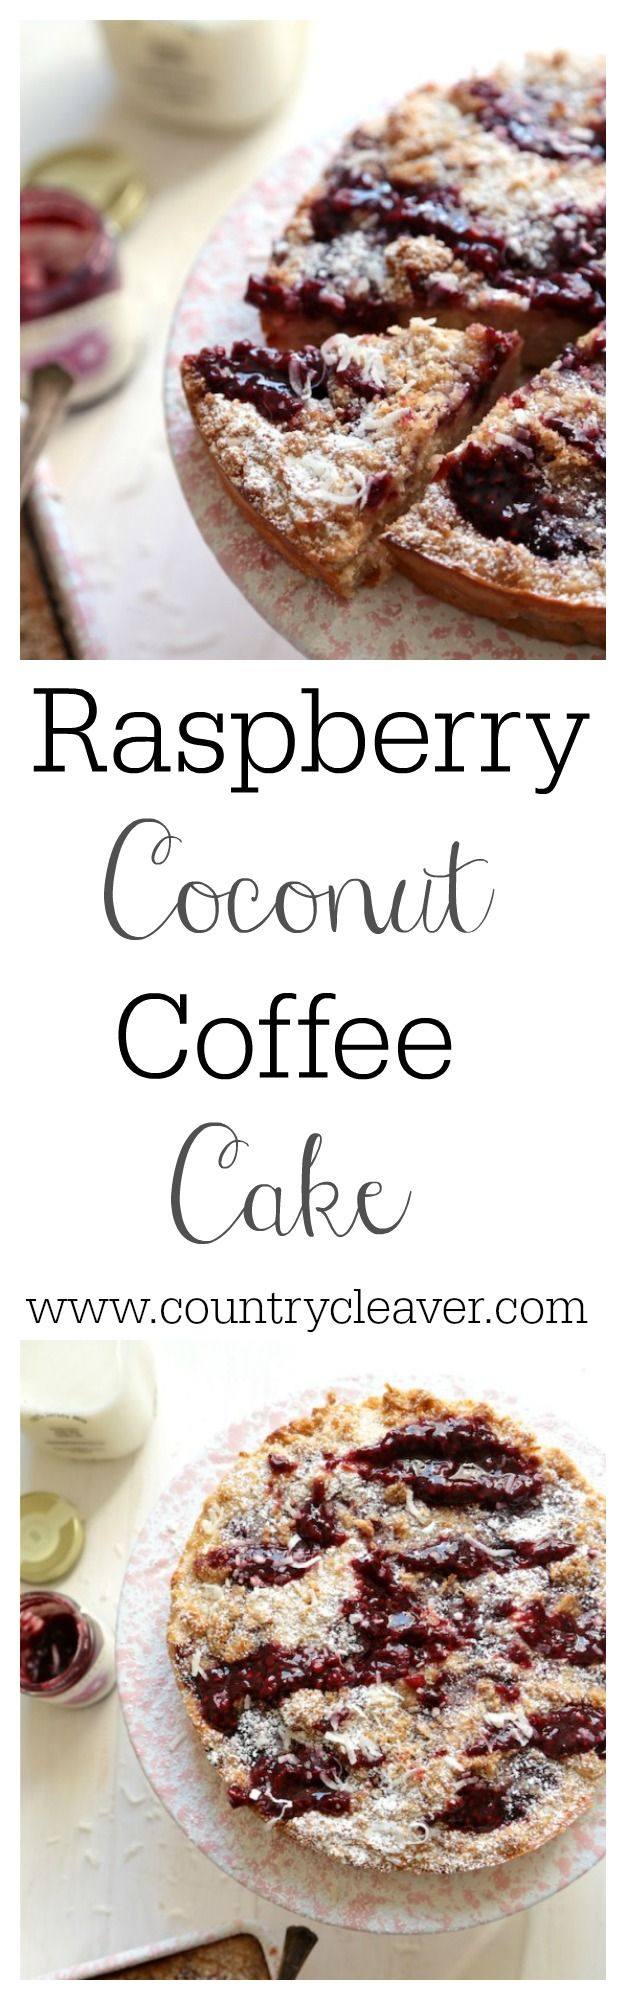 Raspberry Coconut Coffee Cake